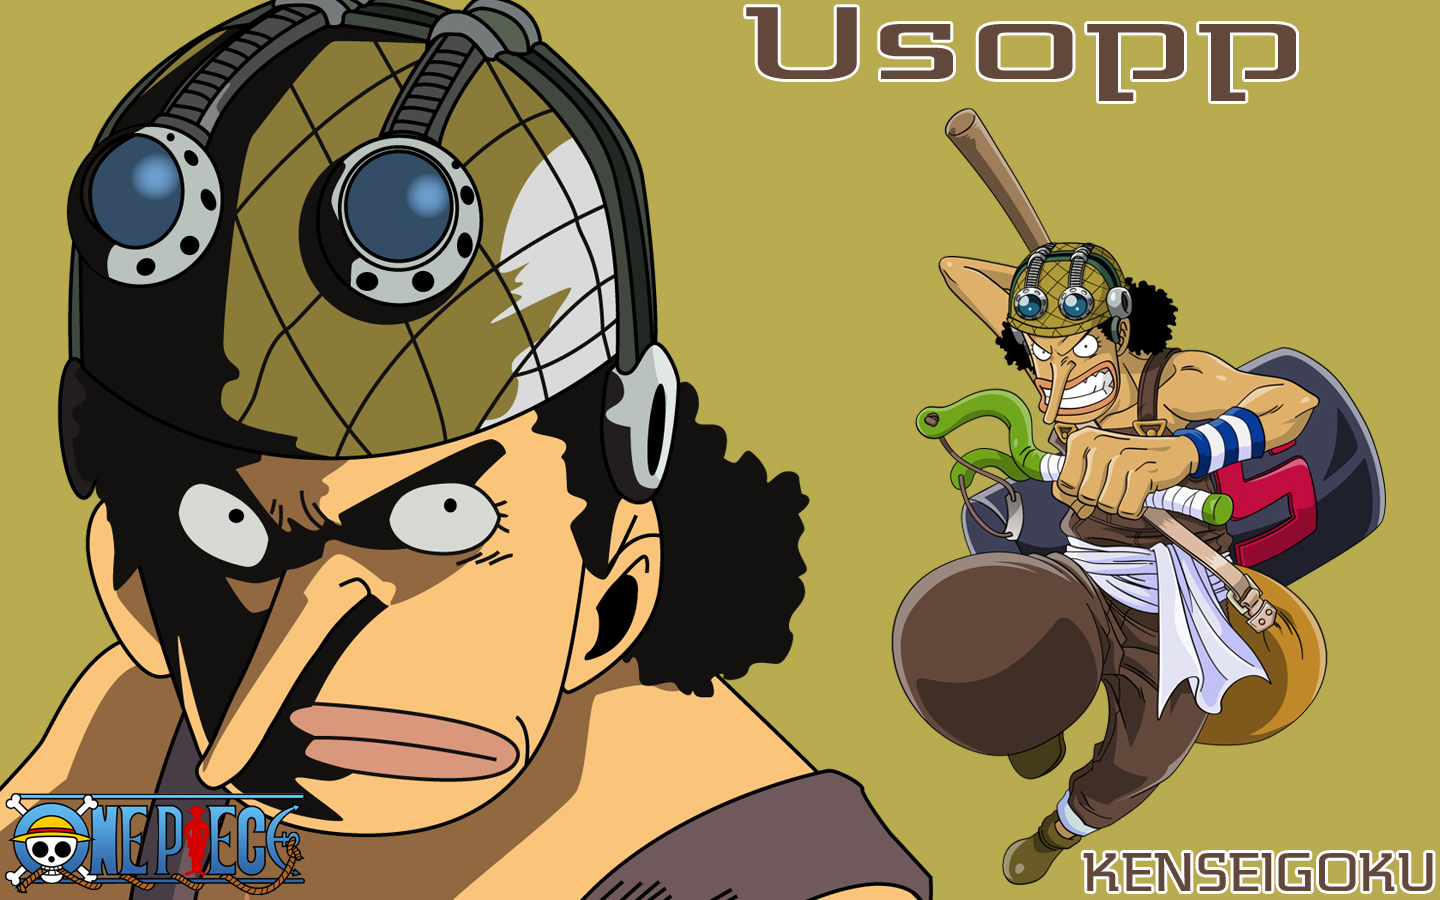 One Piece Usopp Wallpaper Phone Is Cool Wallpapers